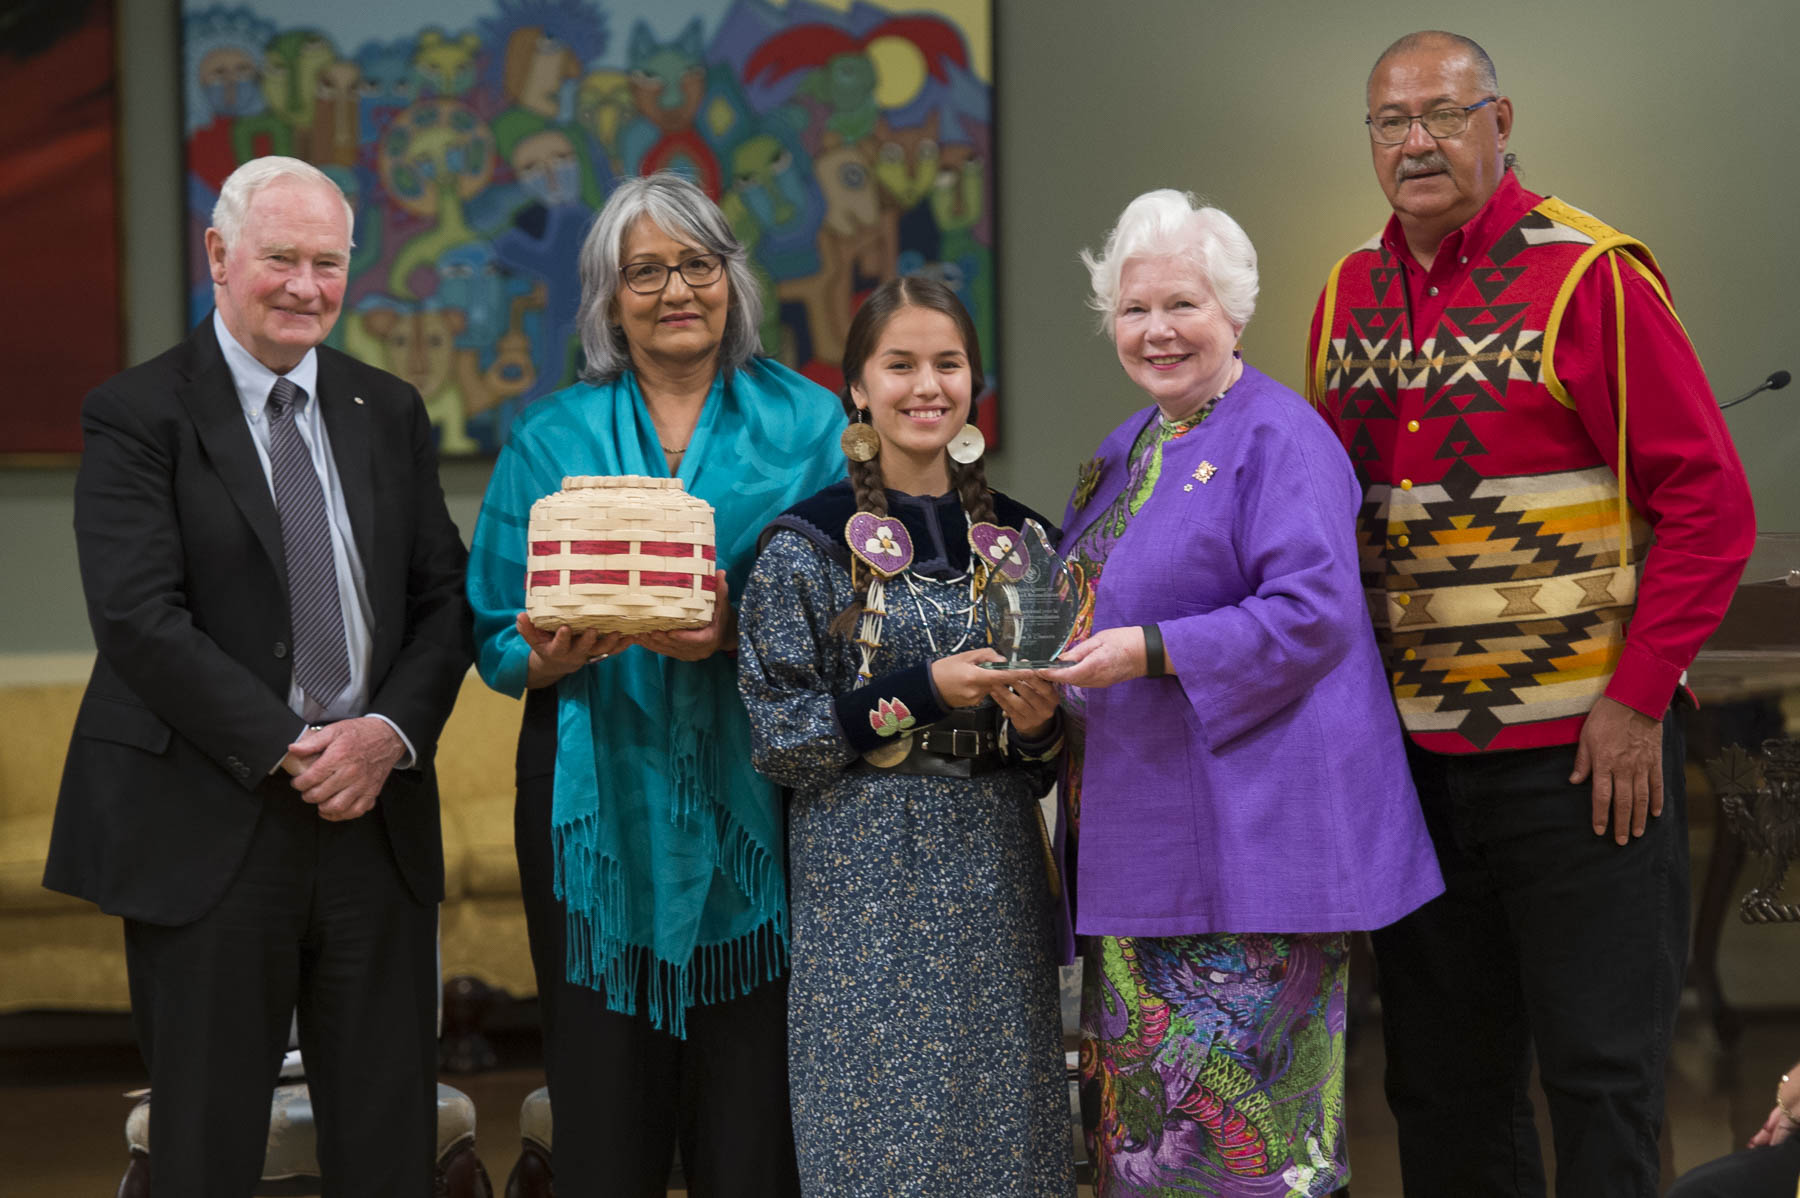 His Excellency accompanied by two Indian Residential School survivors, Ms. Terri Brown and 